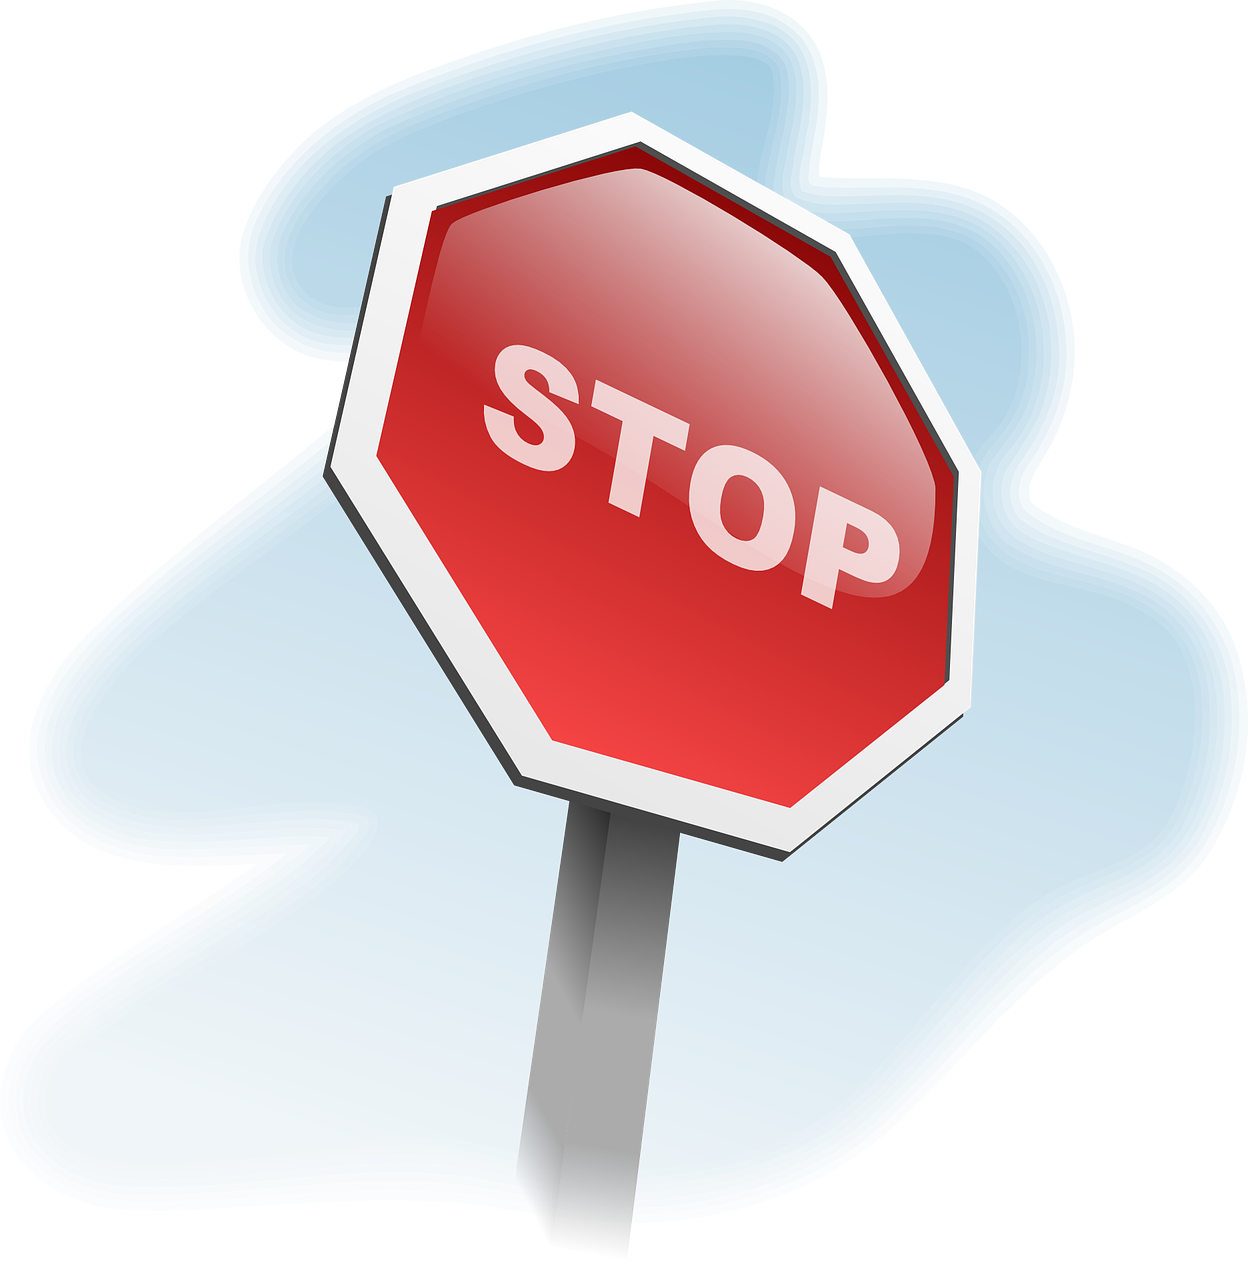 stop sign traffic sign stop free photo